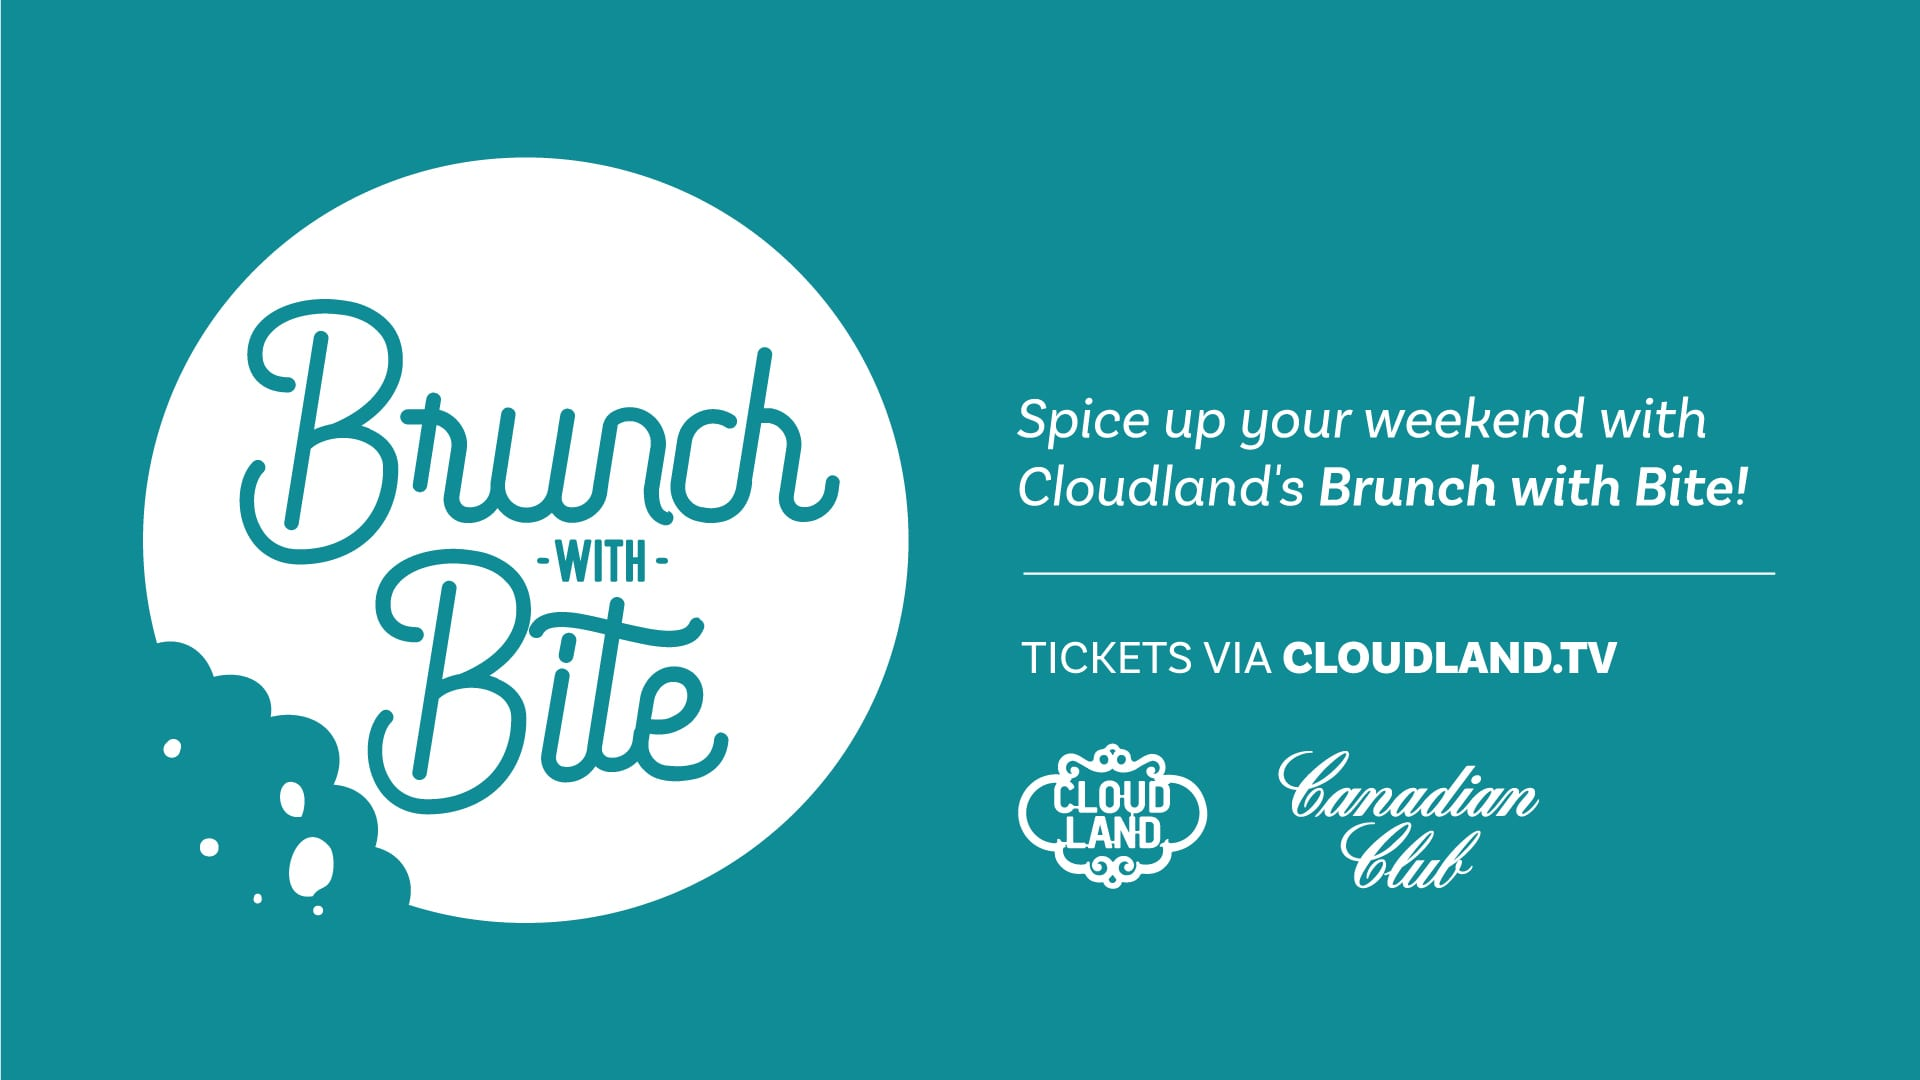 Cloudland Brunch With Bite